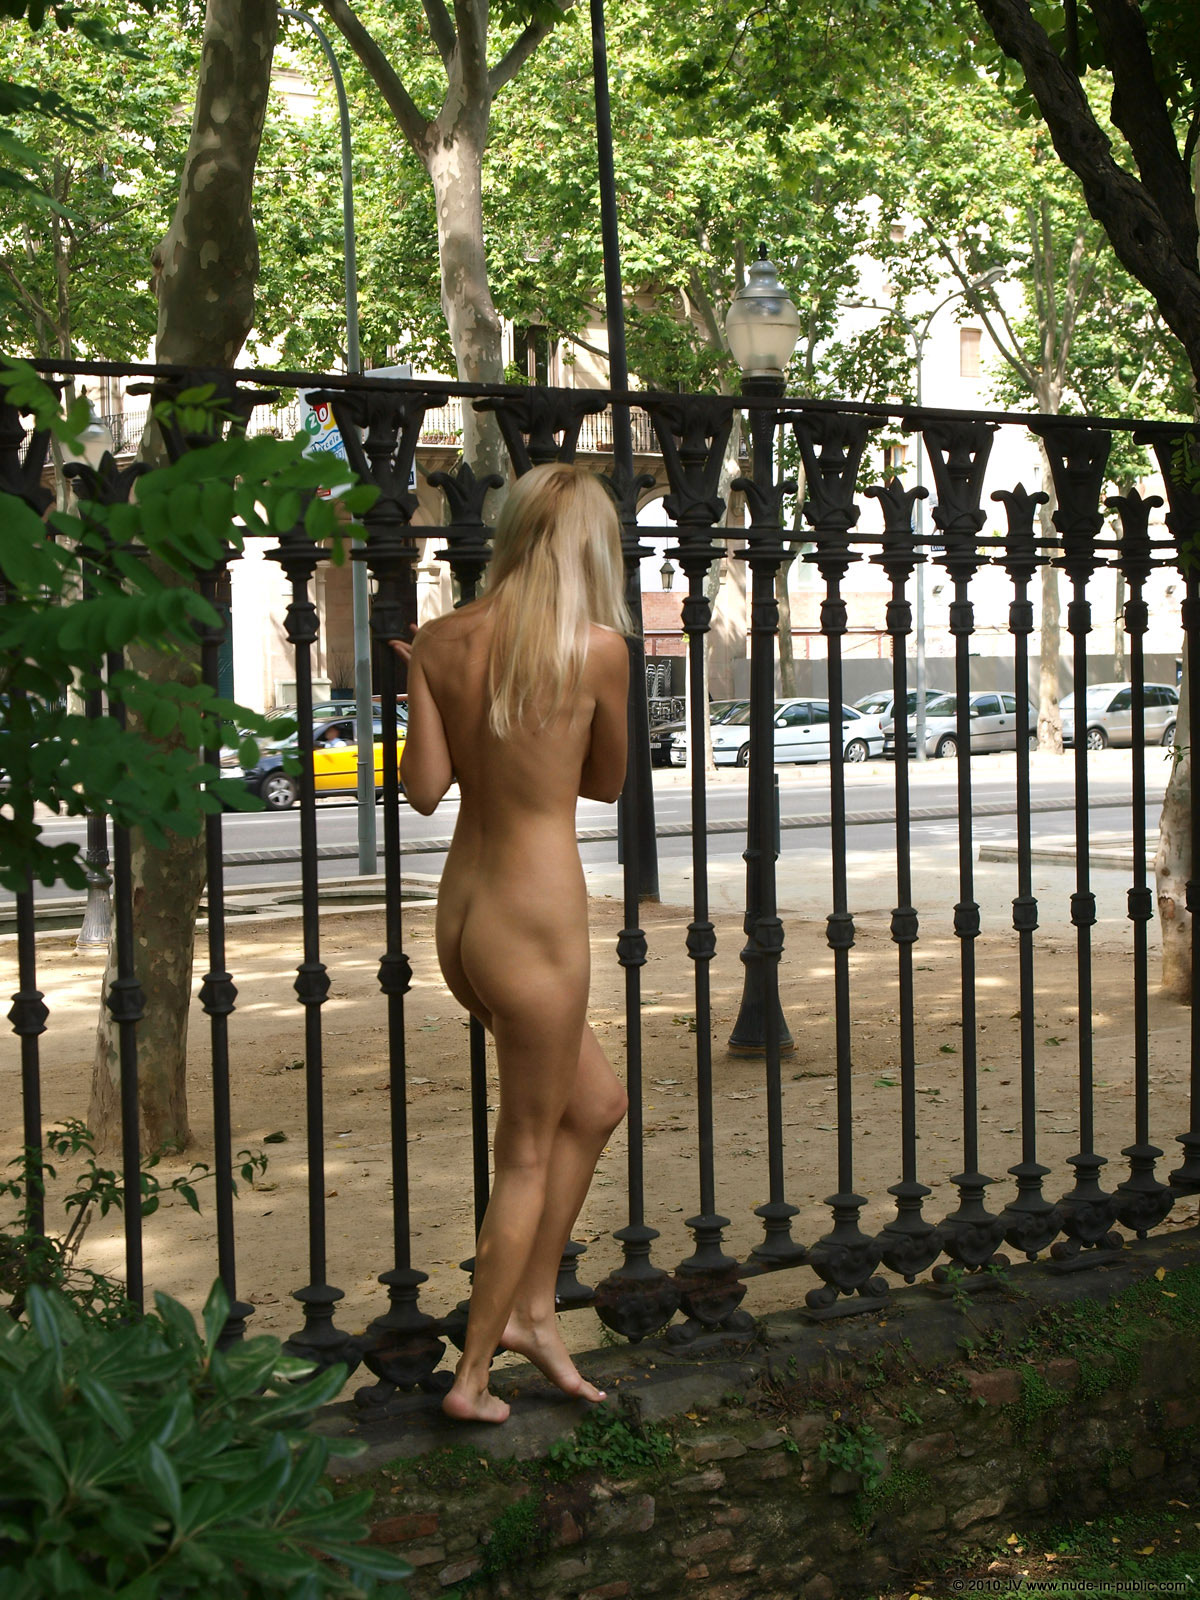 judita-blonde-naked-in-park-barcelona-public-17